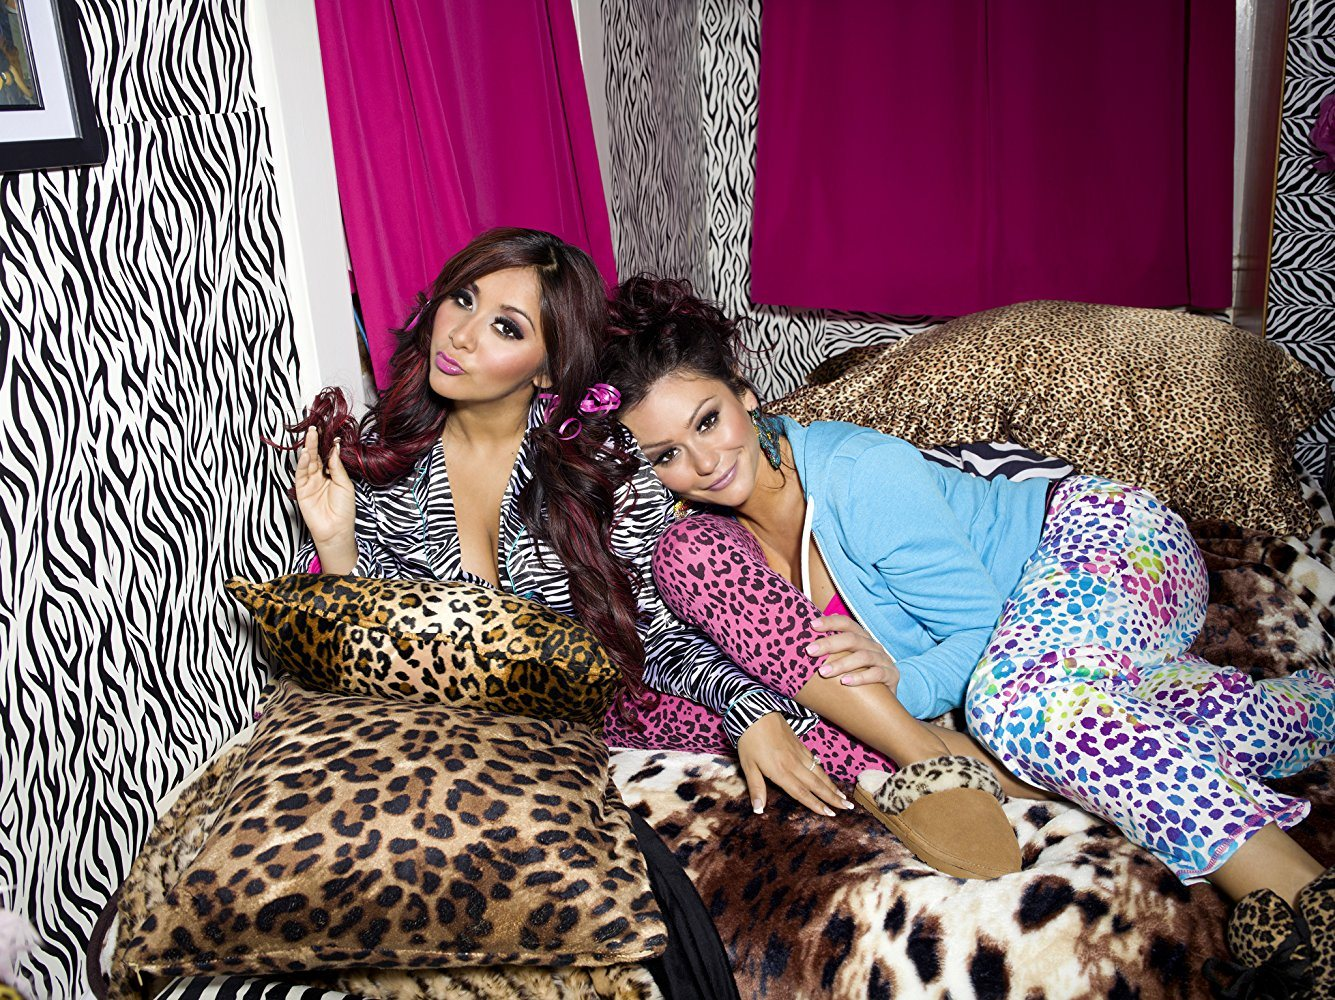 Snooki and J Wow